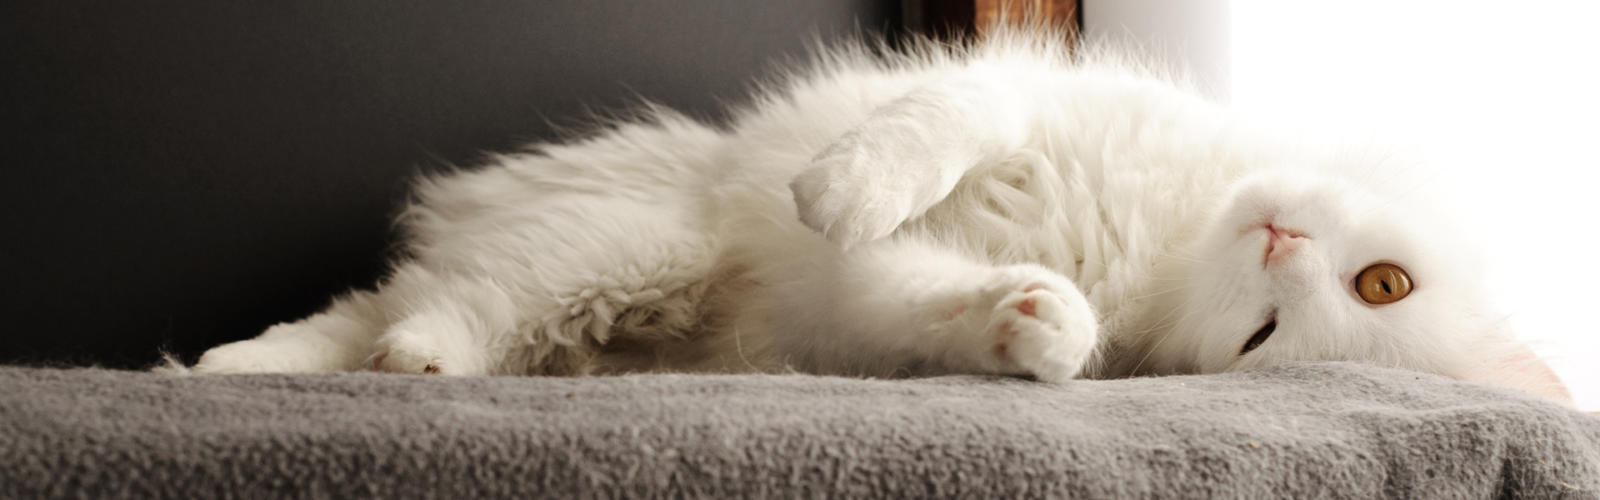 Services for Cats Posh Paws Greenville South Carolina